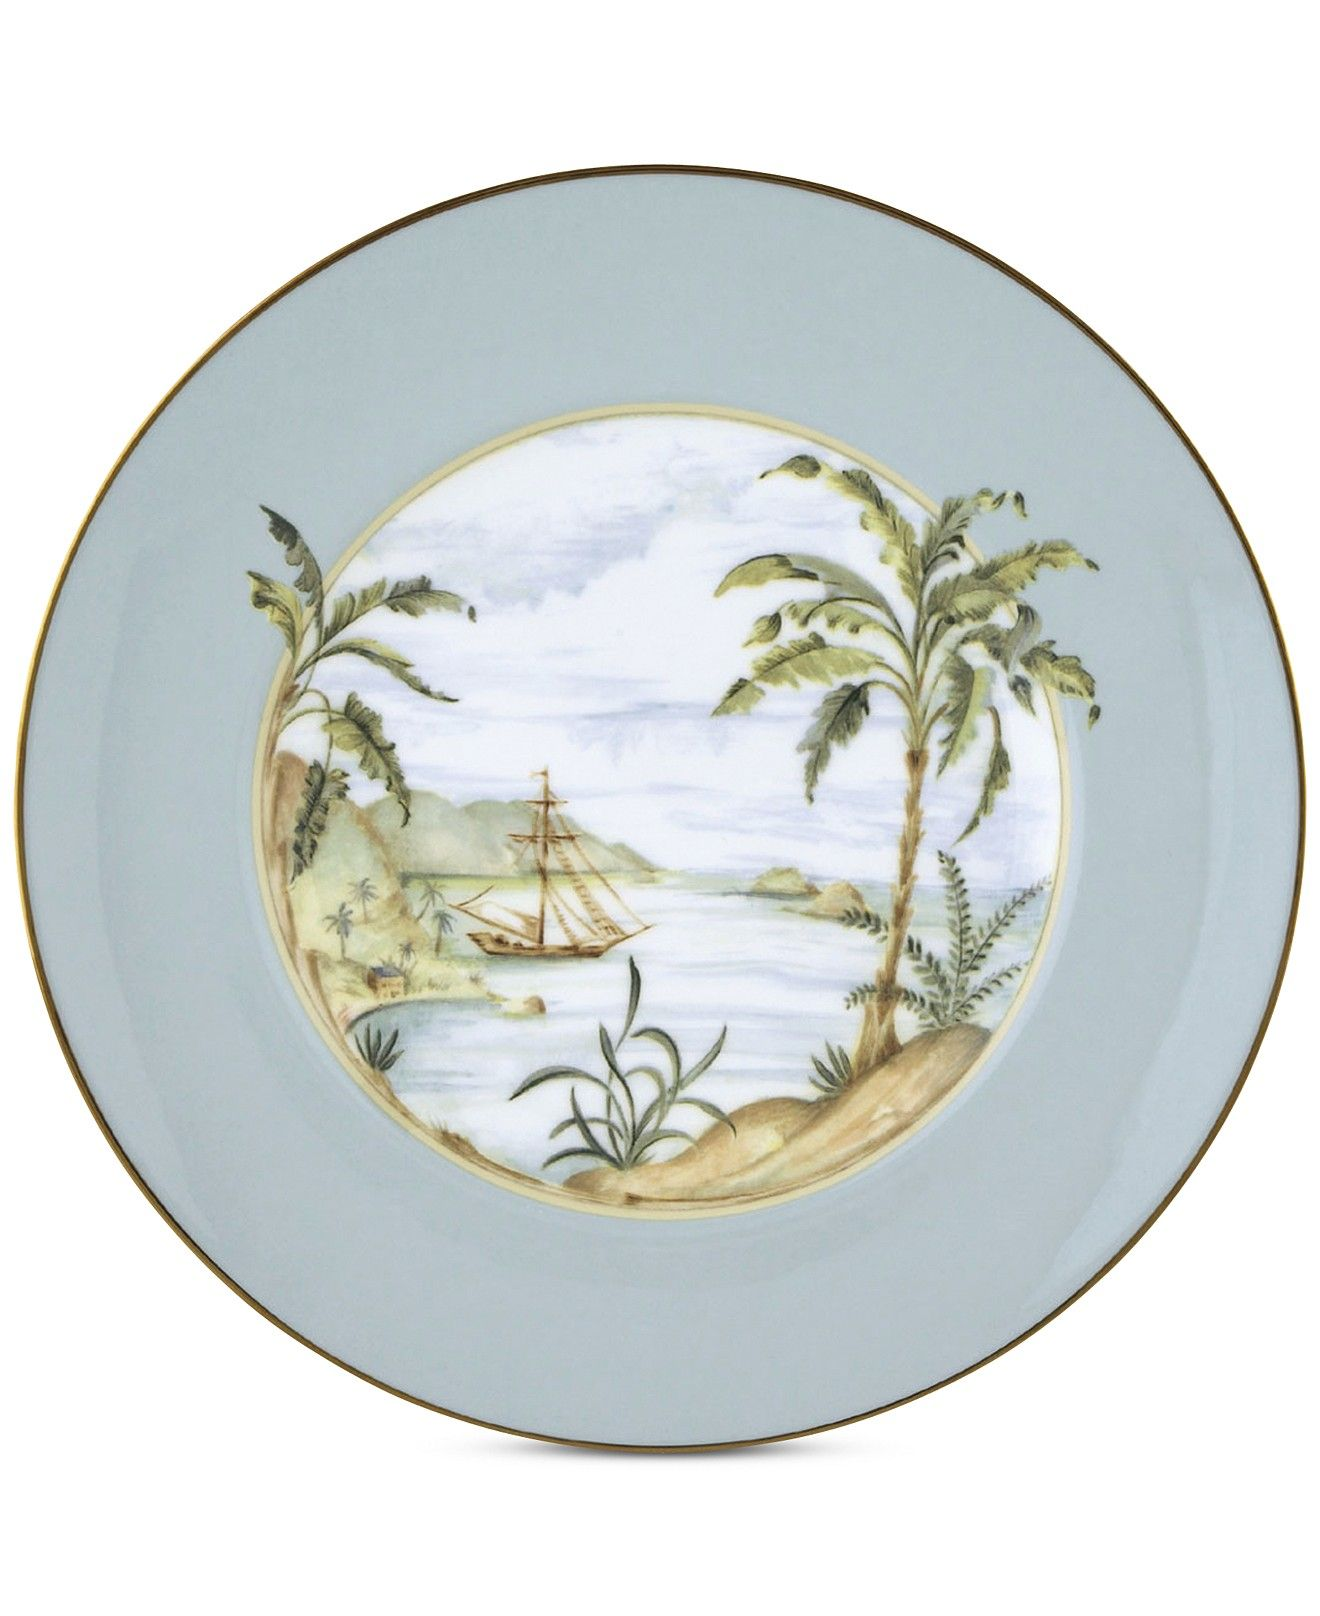 Lenox British Colonial Accent Salad Plate